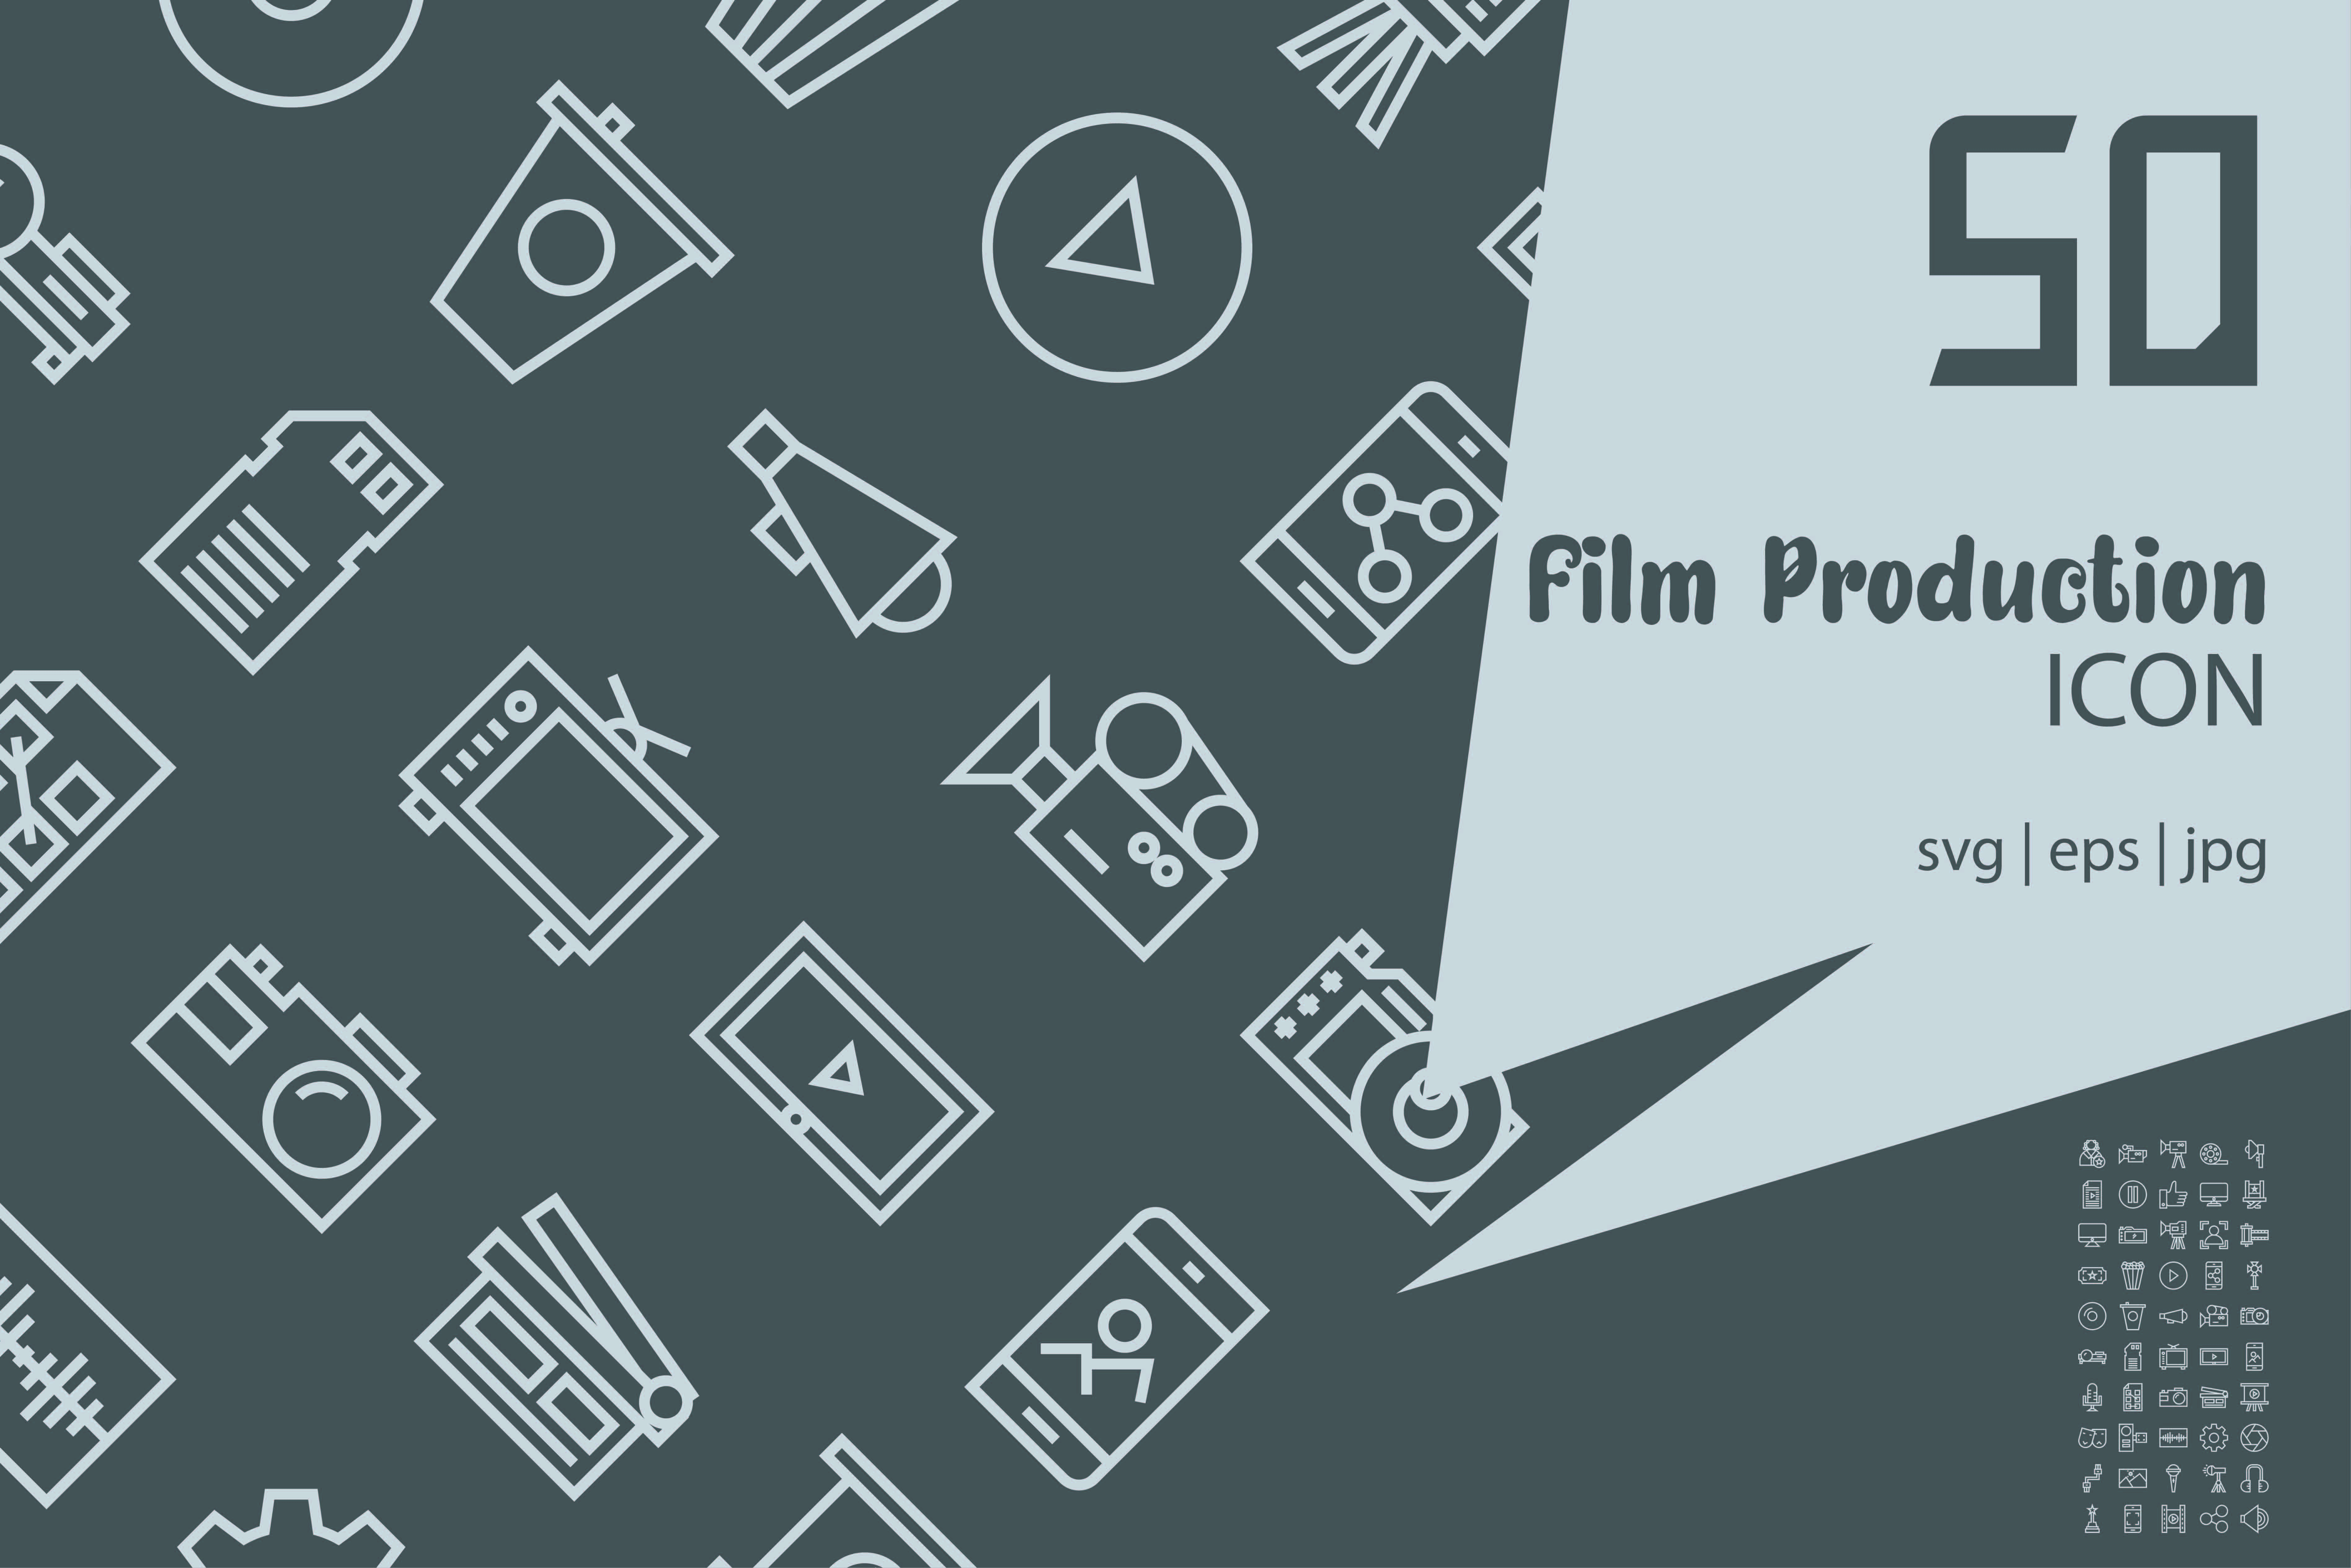 Download Free Film Production Graphic By Astuti Julia92 Creative Fabrica for Cricut Explore, Silhouette and other cutting machines.